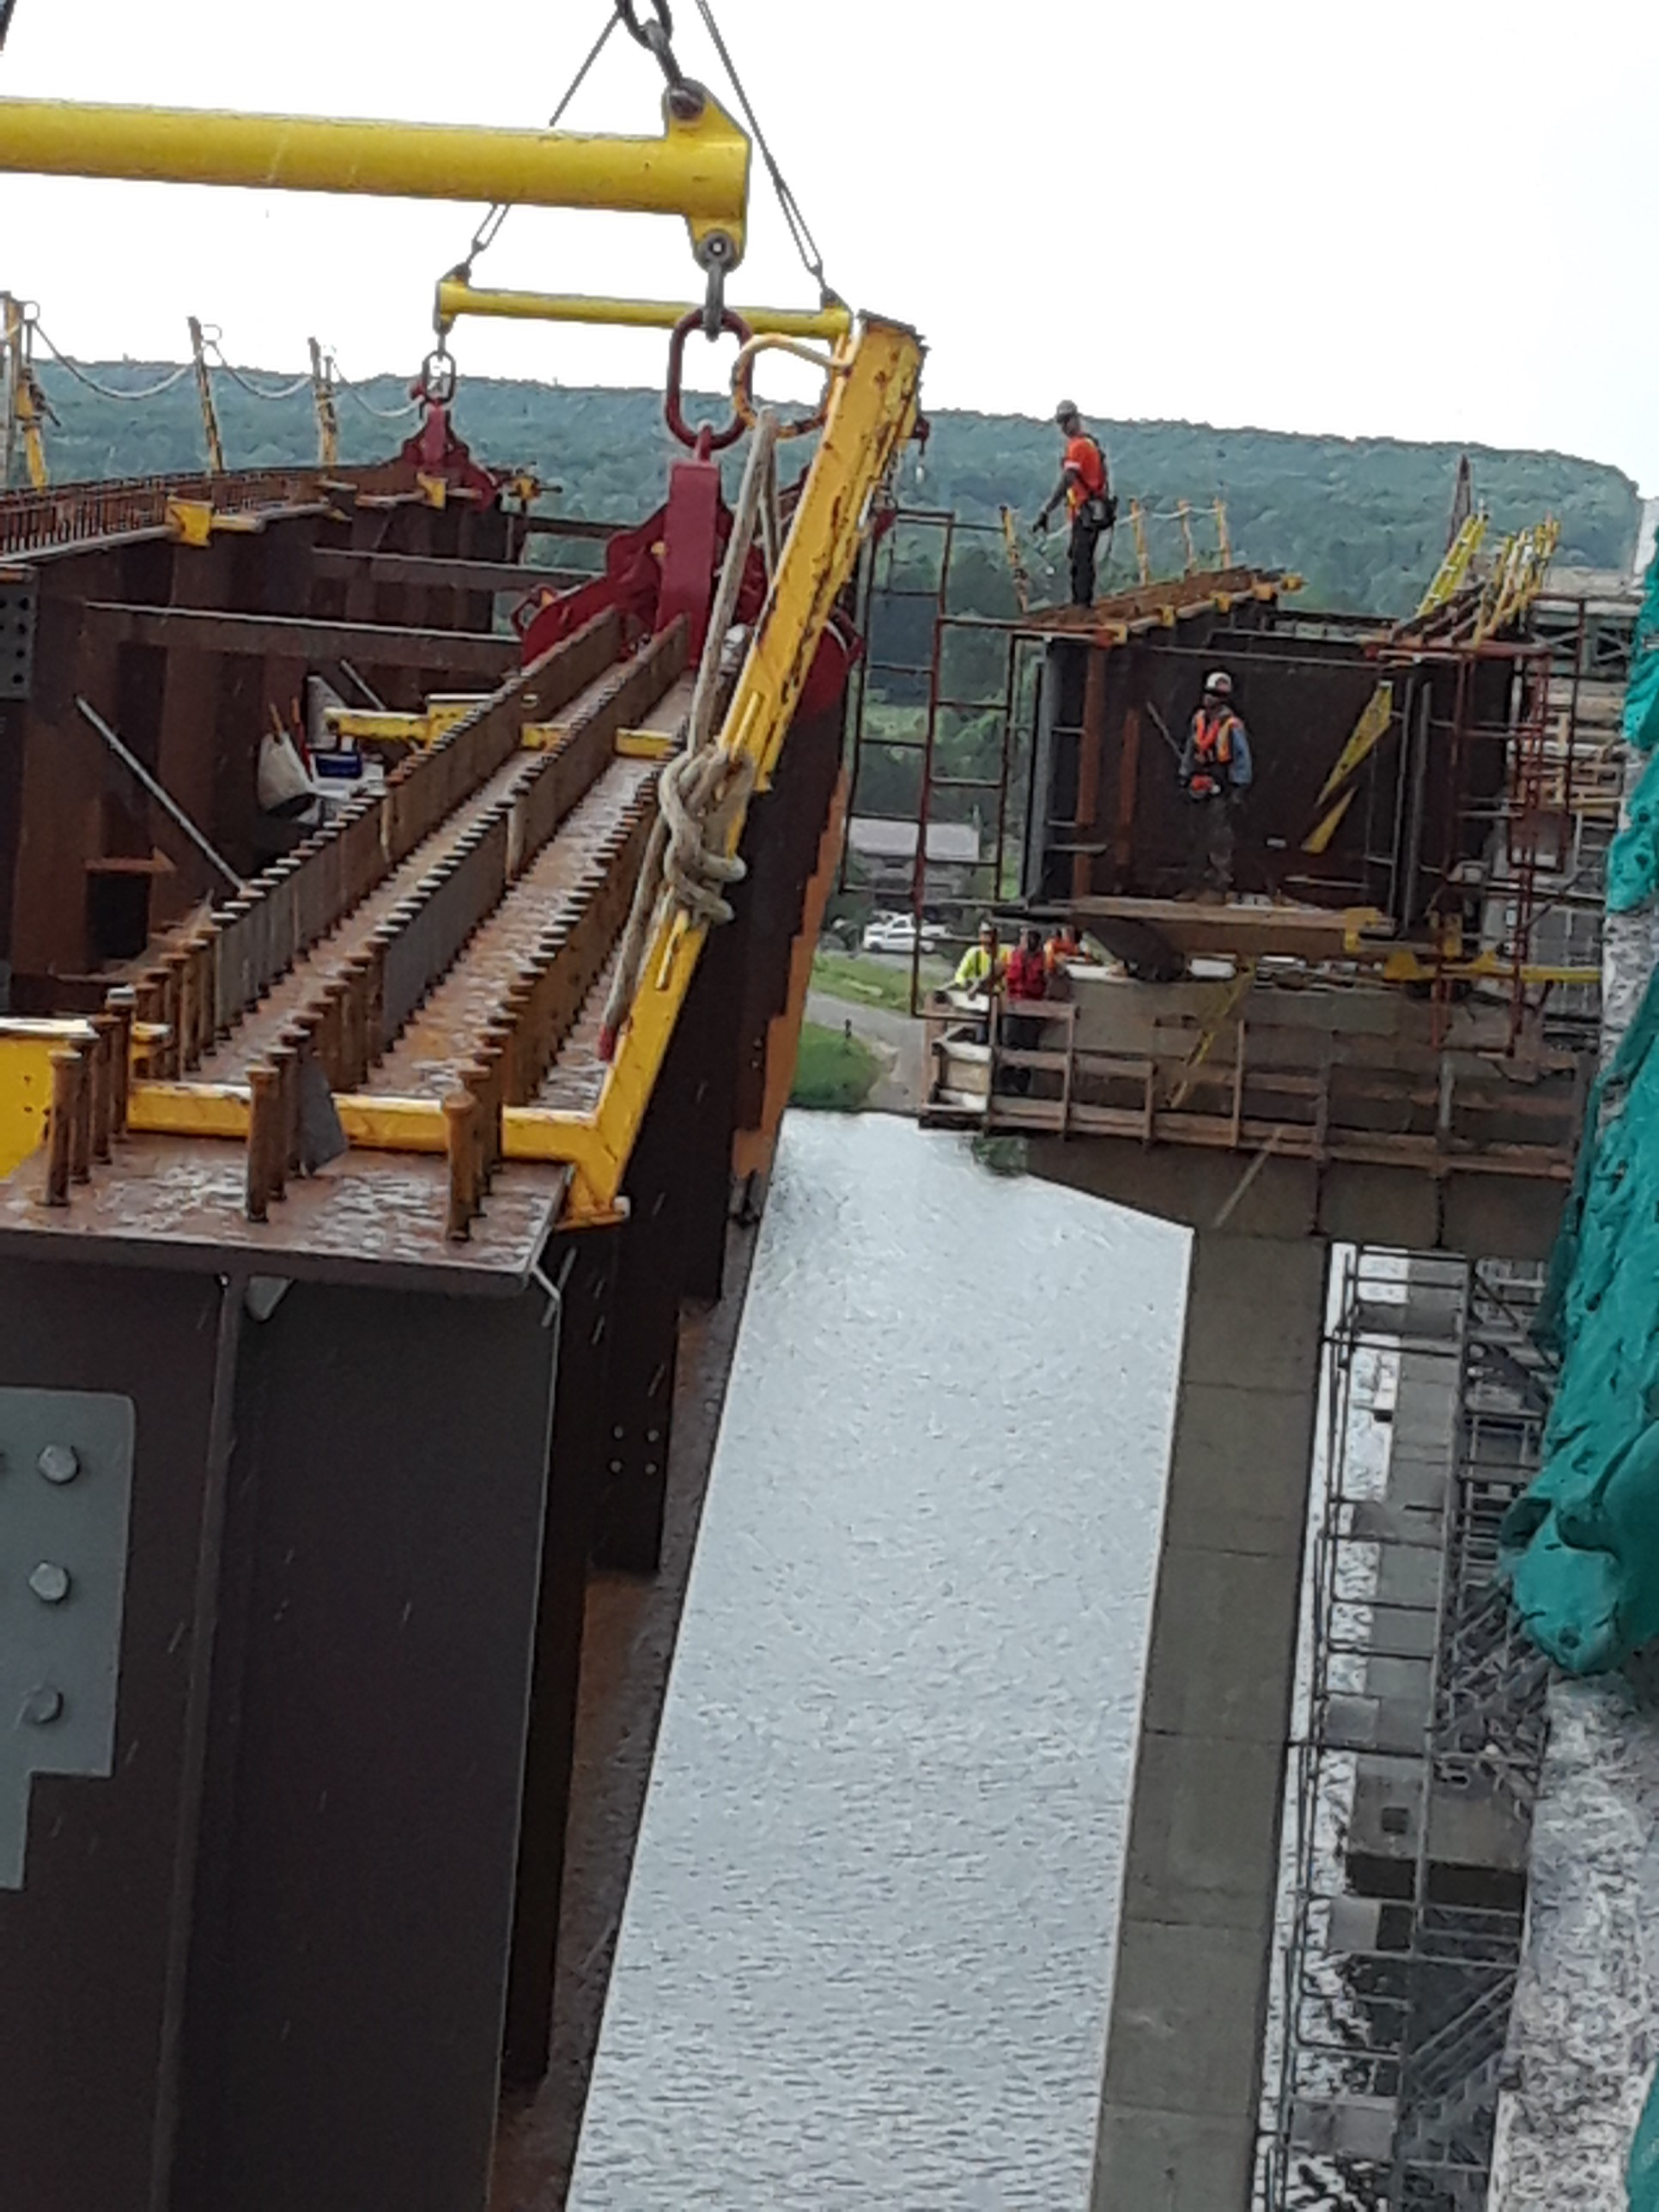 Girder being lowered into place